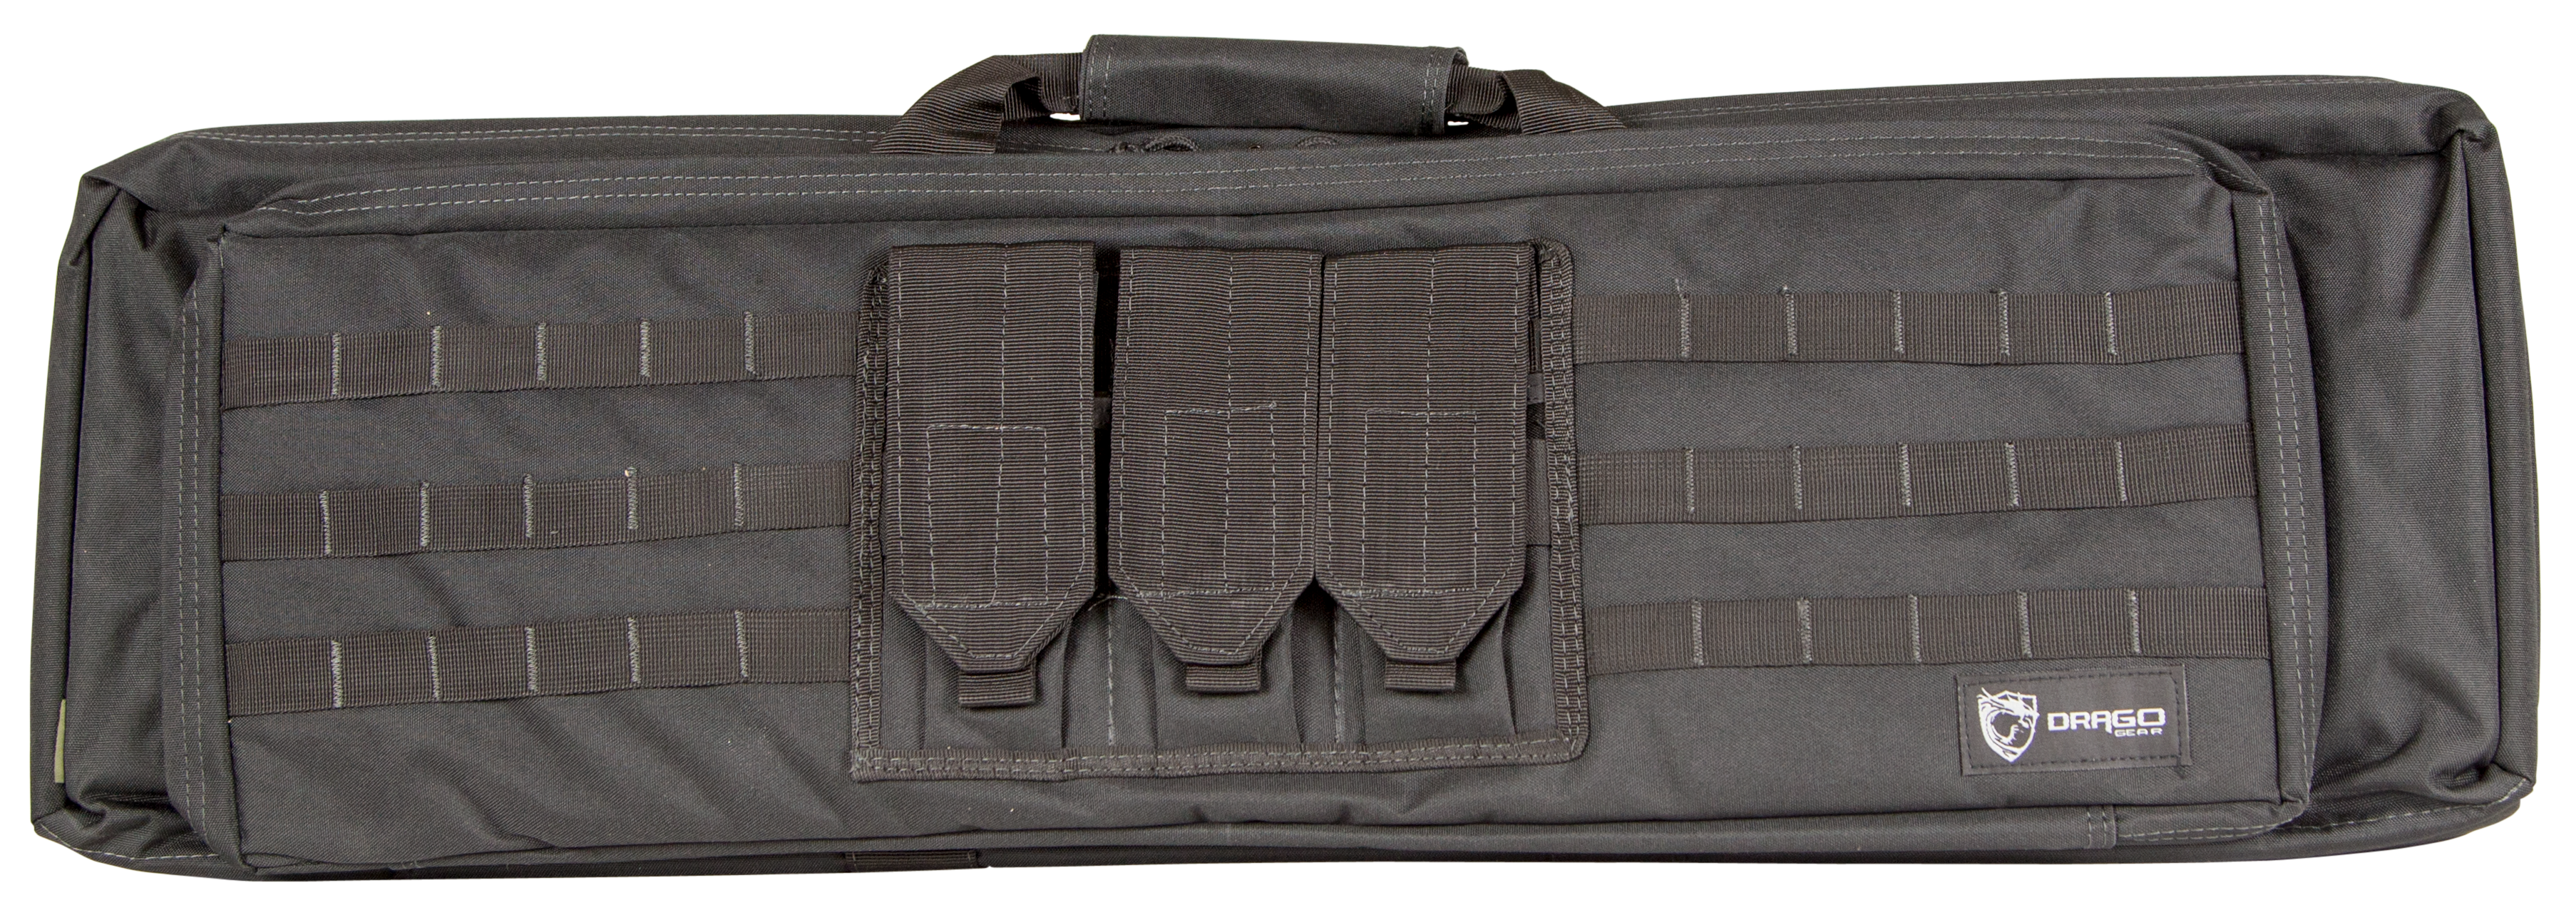 Drago Gear 12306BL XT Double Gun Case 600D Polyester Black 36.25